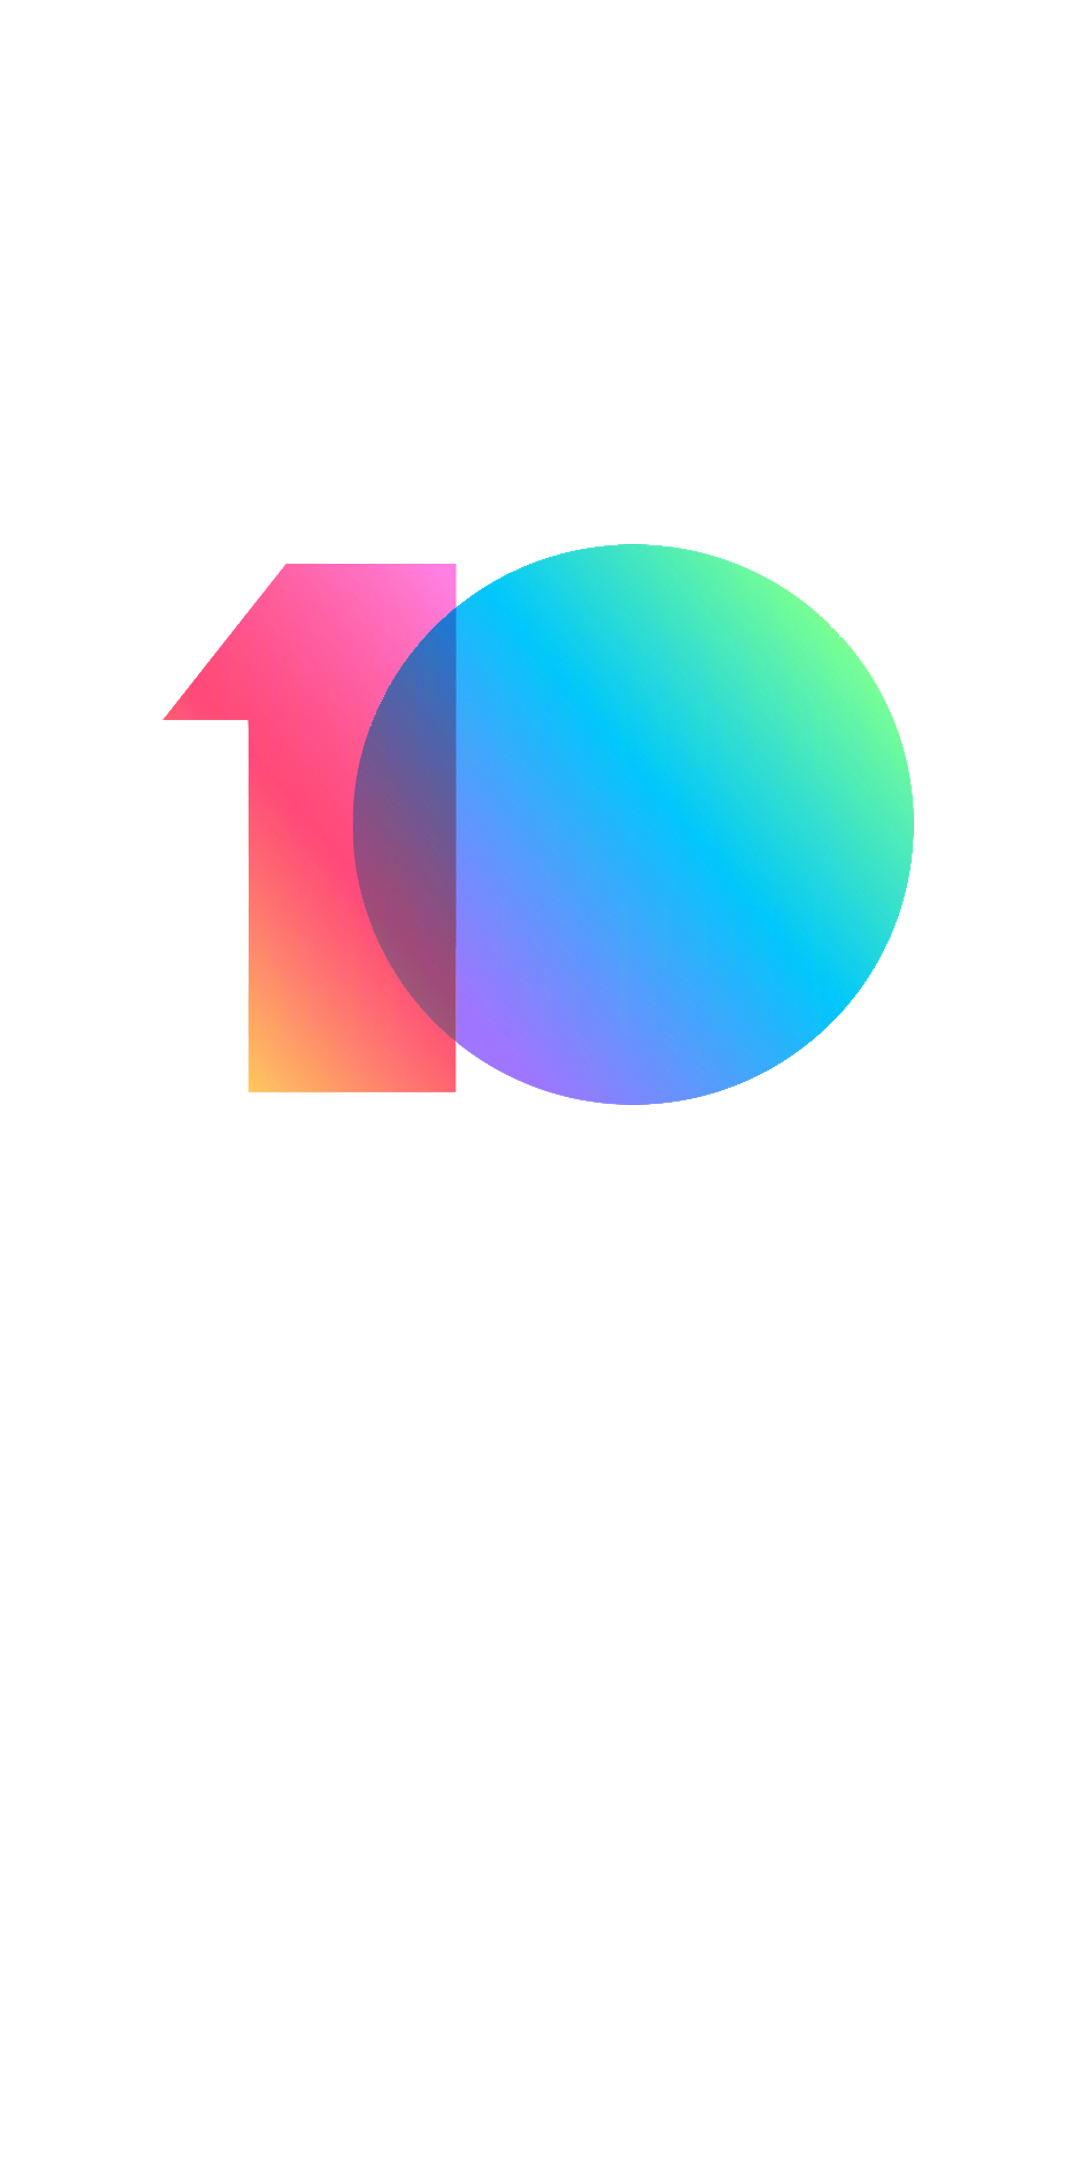 Descargar MIUI 10 Stock Wallpapers [Complete Collection]